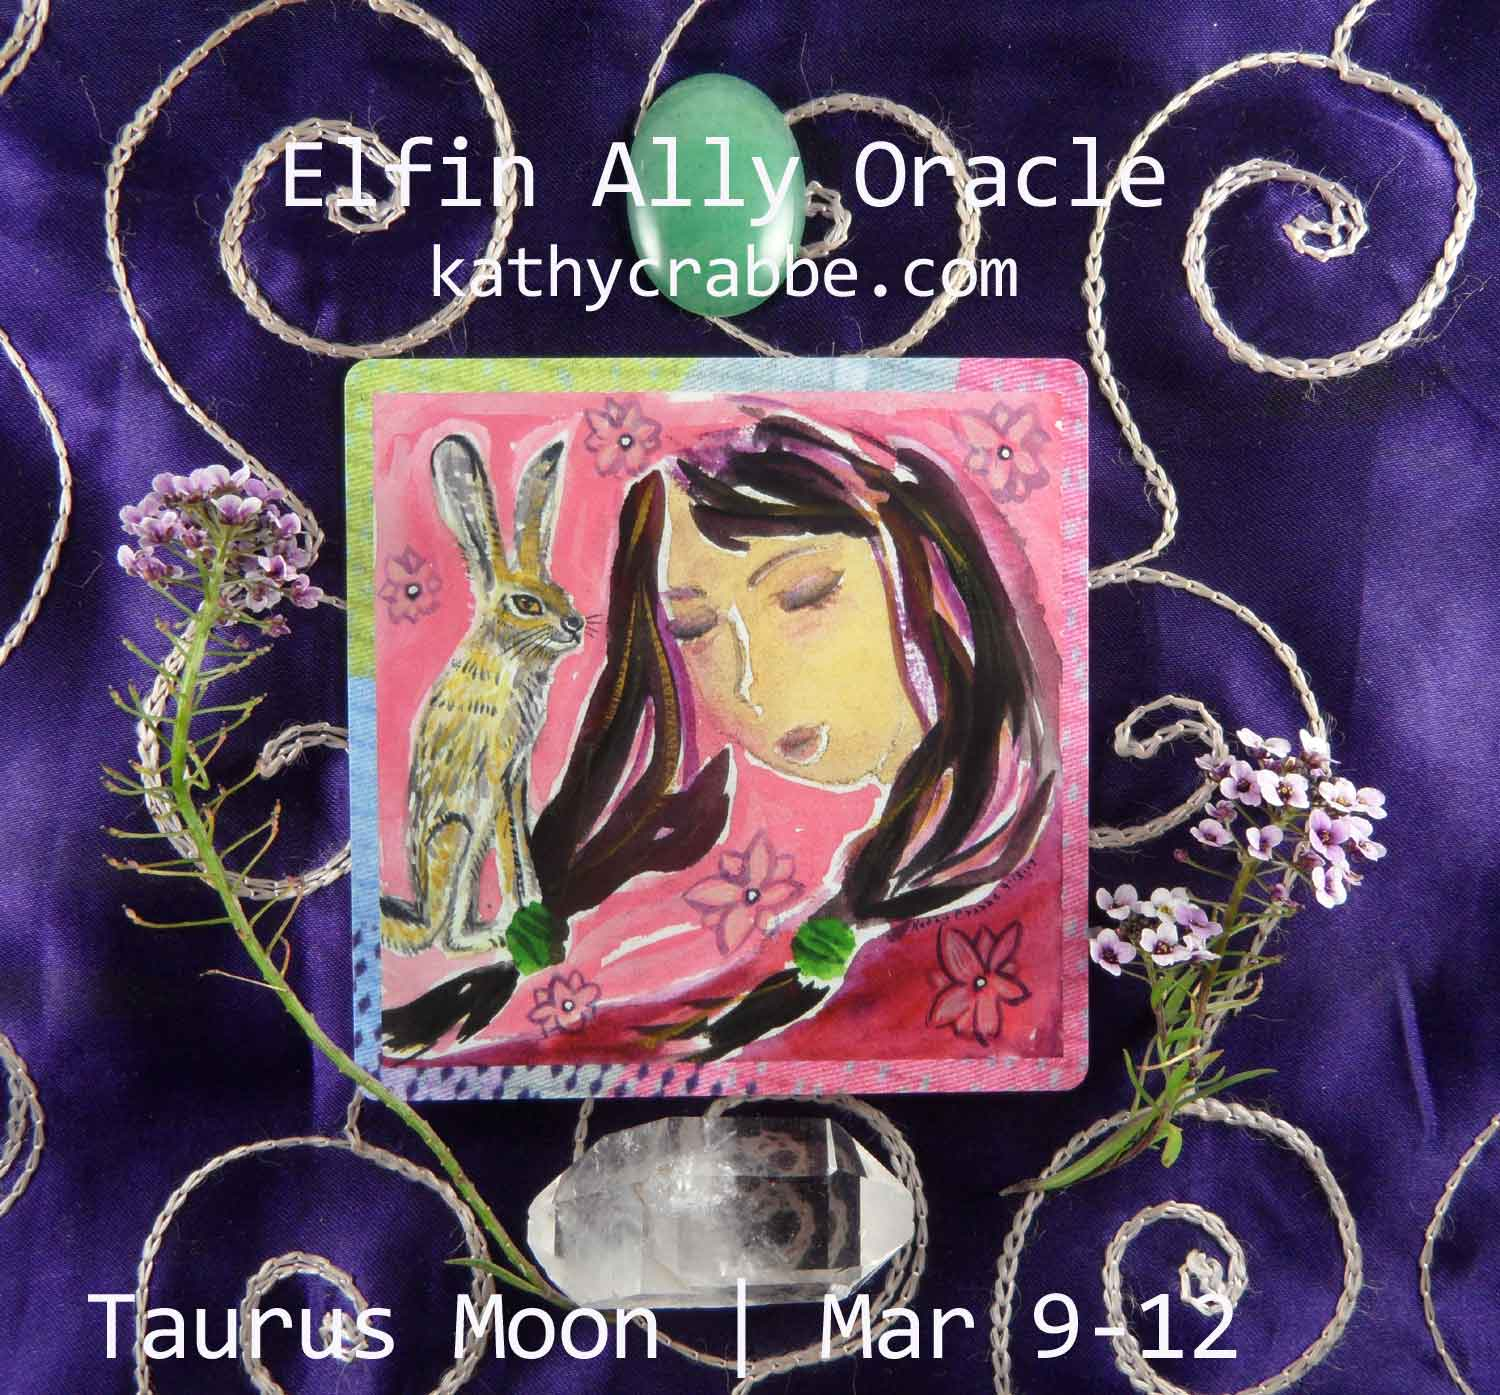 Taurus Moon-Vibes by Kathy Crabbe